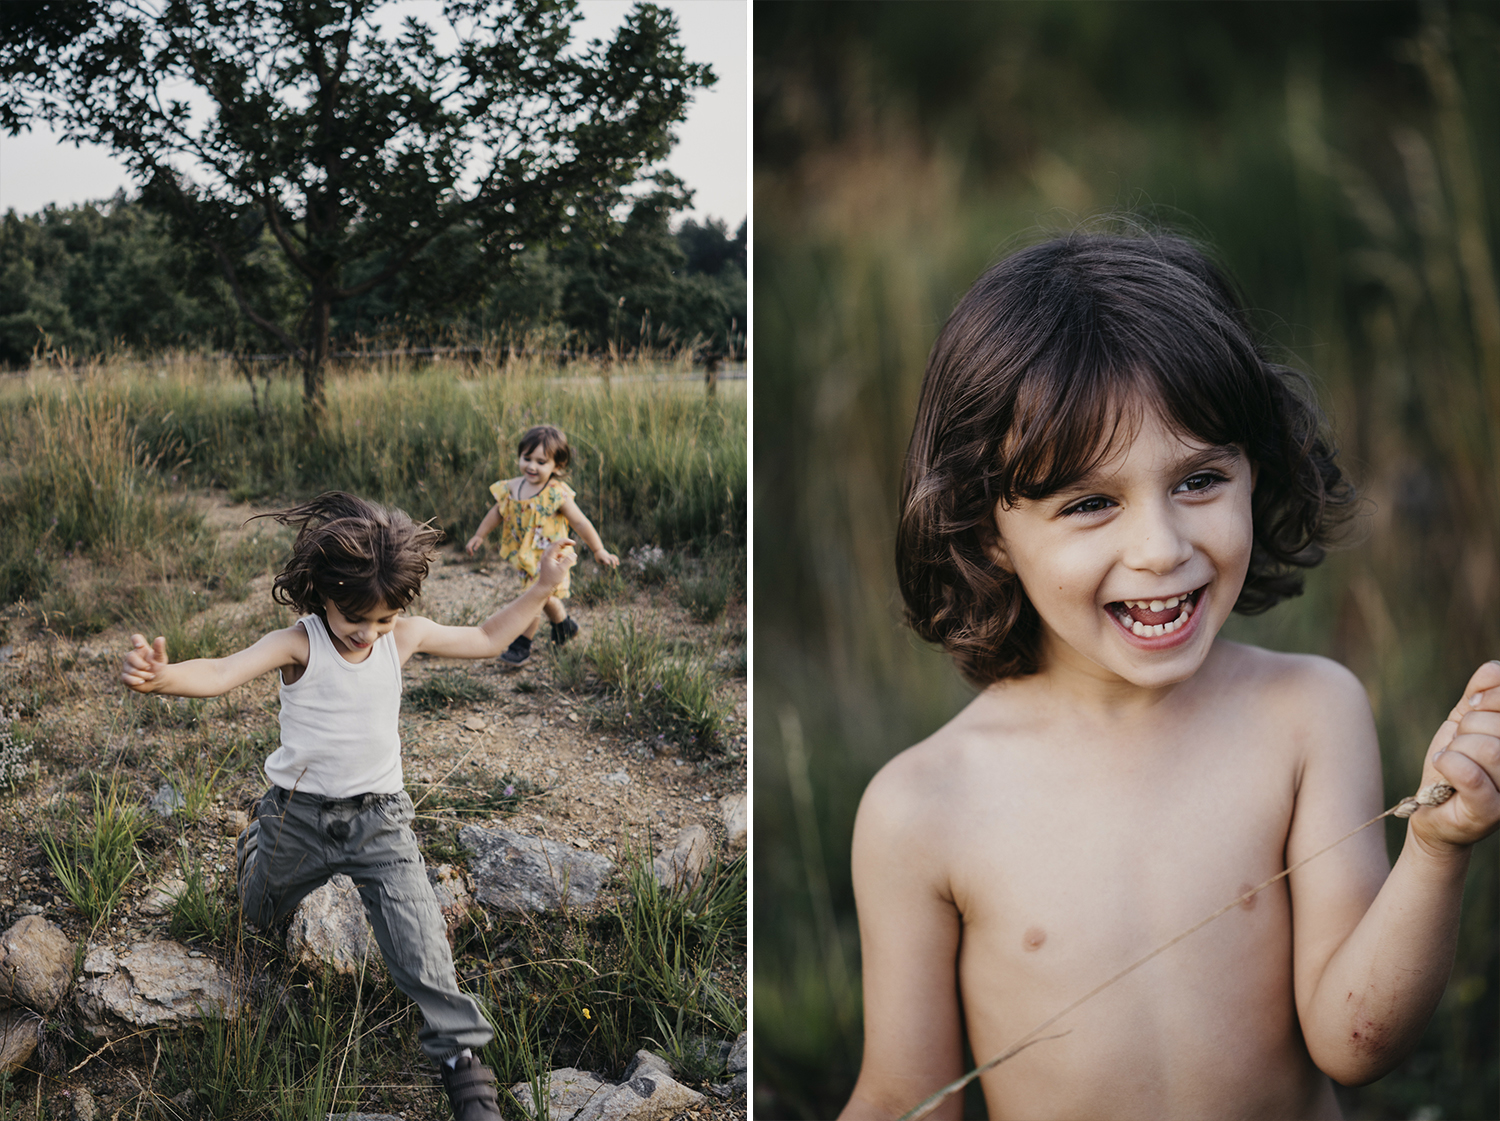 Family outdoor photo session kids playing. Genova. Liguria. Rebecca Rinaldi Photography